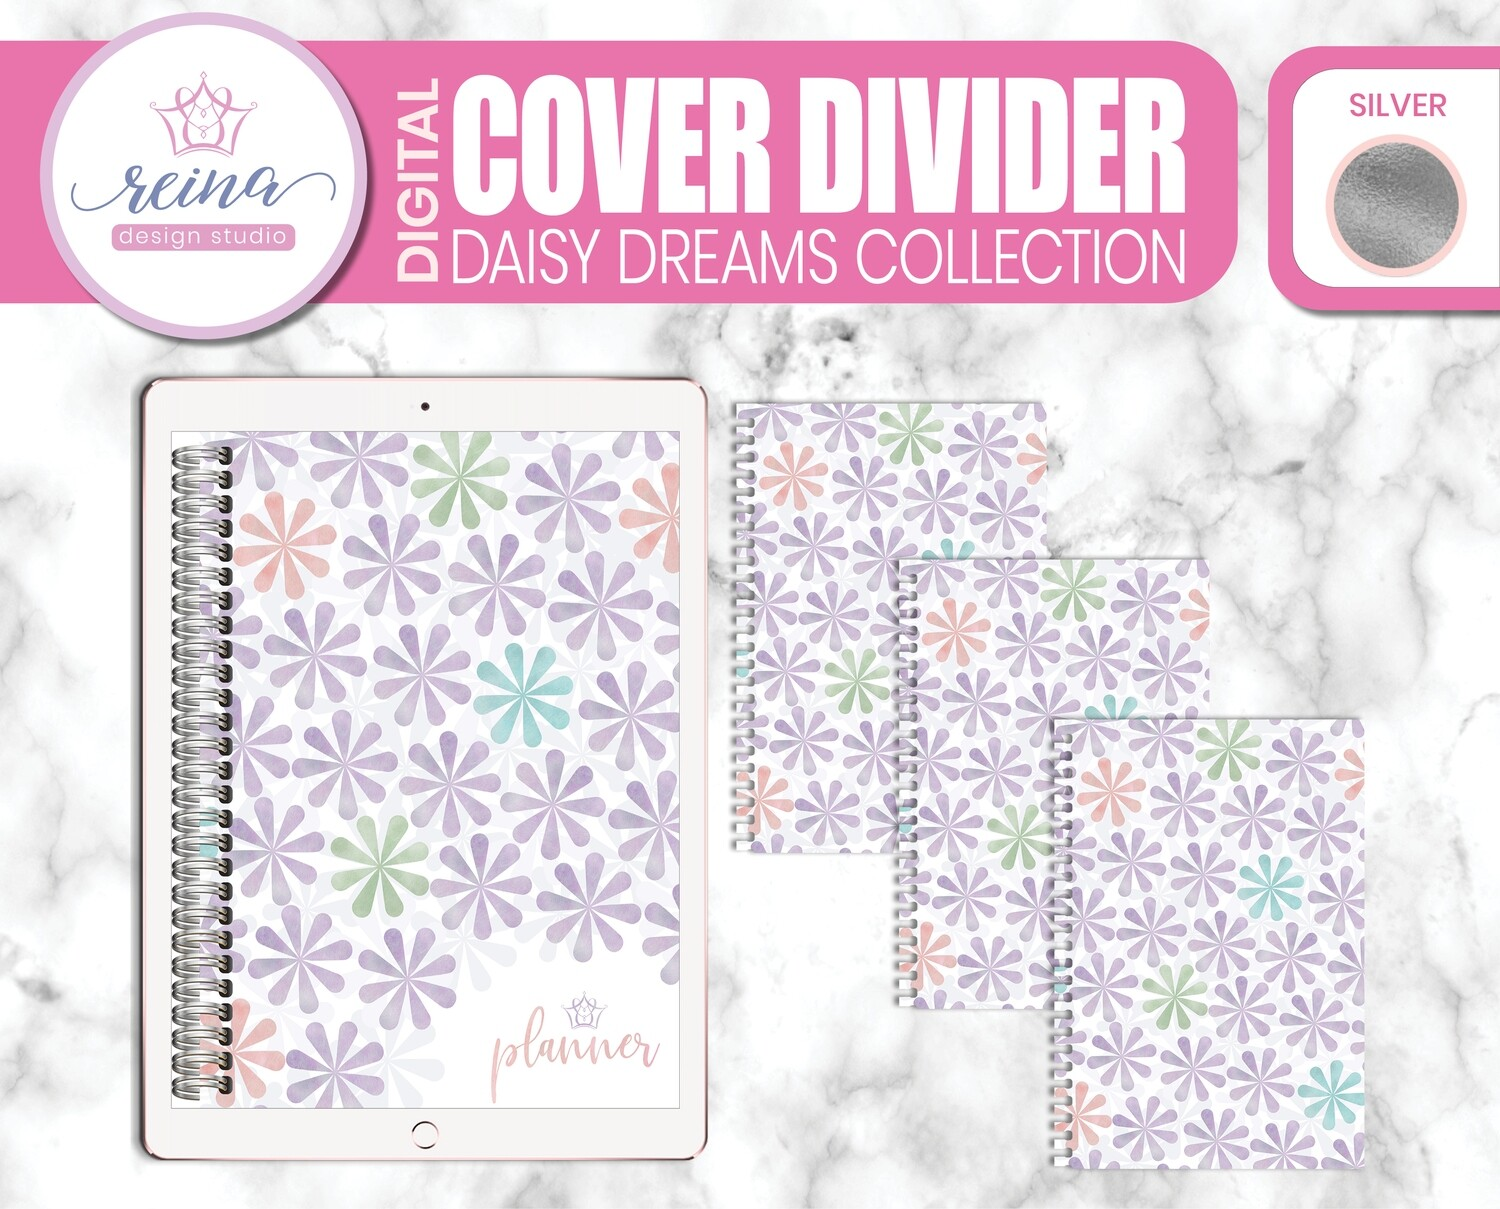 Interchangeable Digital Planner Cover and Dividers   Daisy Dreams, Silver